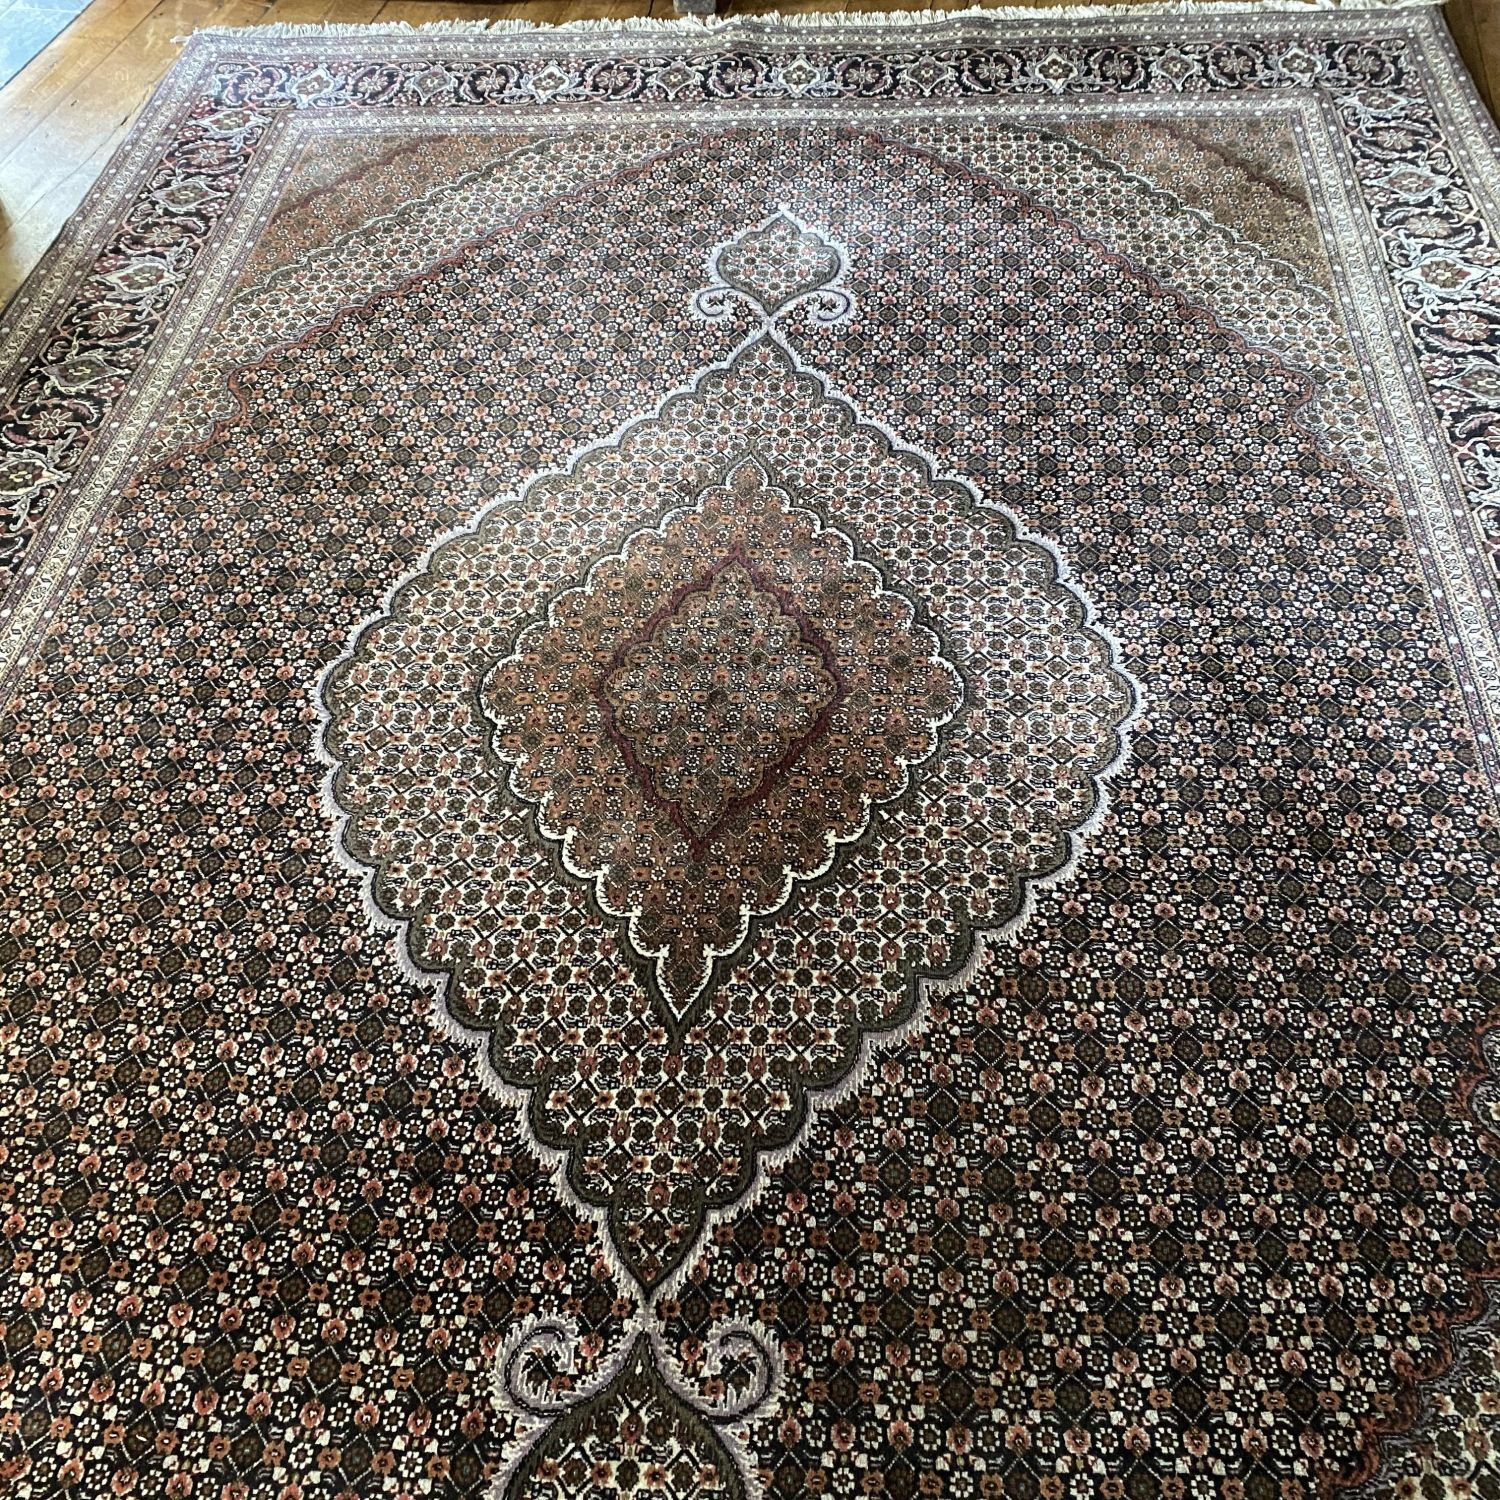 A Stunning Hand Knotted Persian Rug